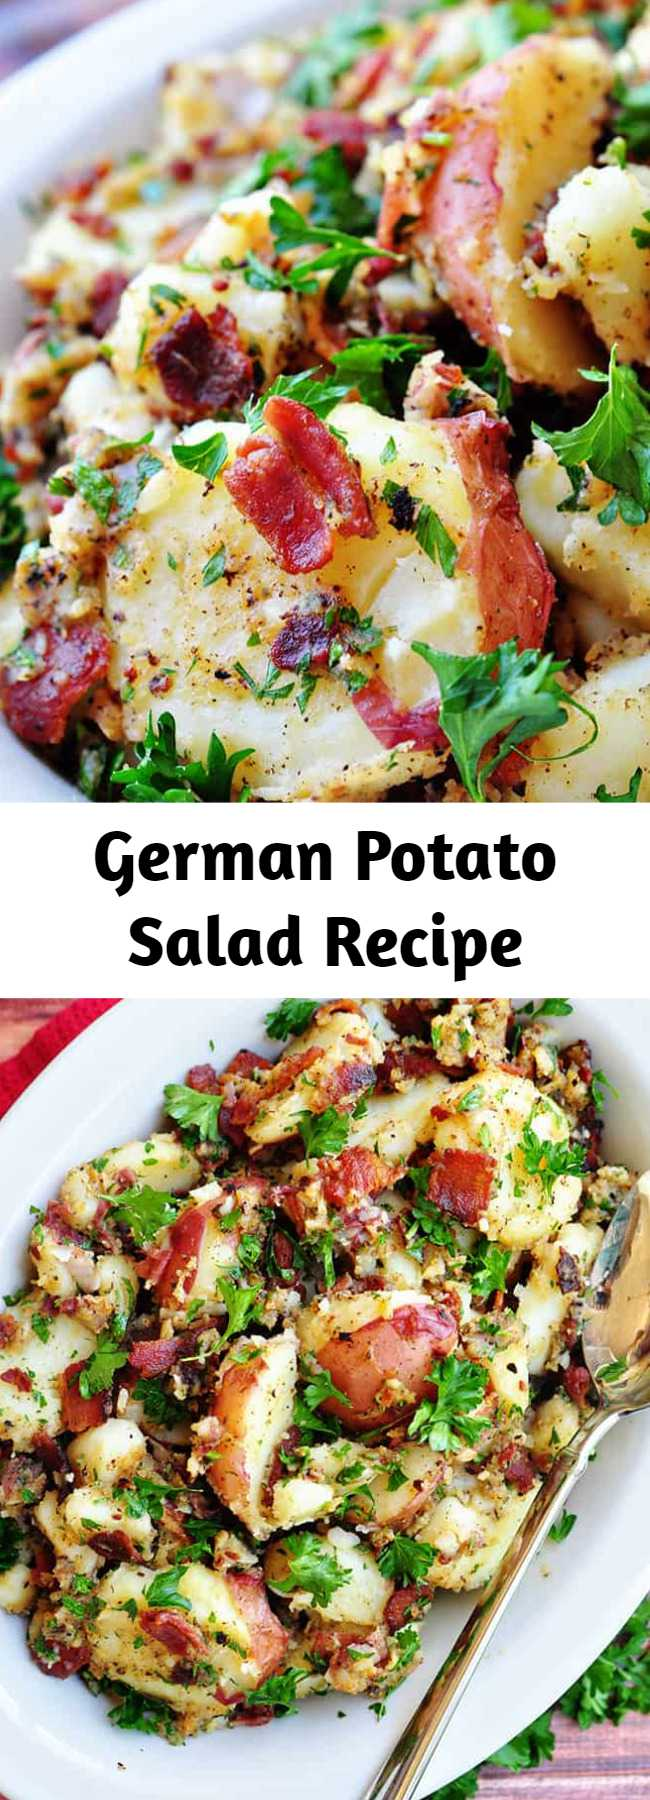 German Potato Salad Recipe - THE BEST German Potato Salad is a warm potato salad recipe featuring tender red potatoes and bacon in a tangy dressing for the ultimate summer side dish!